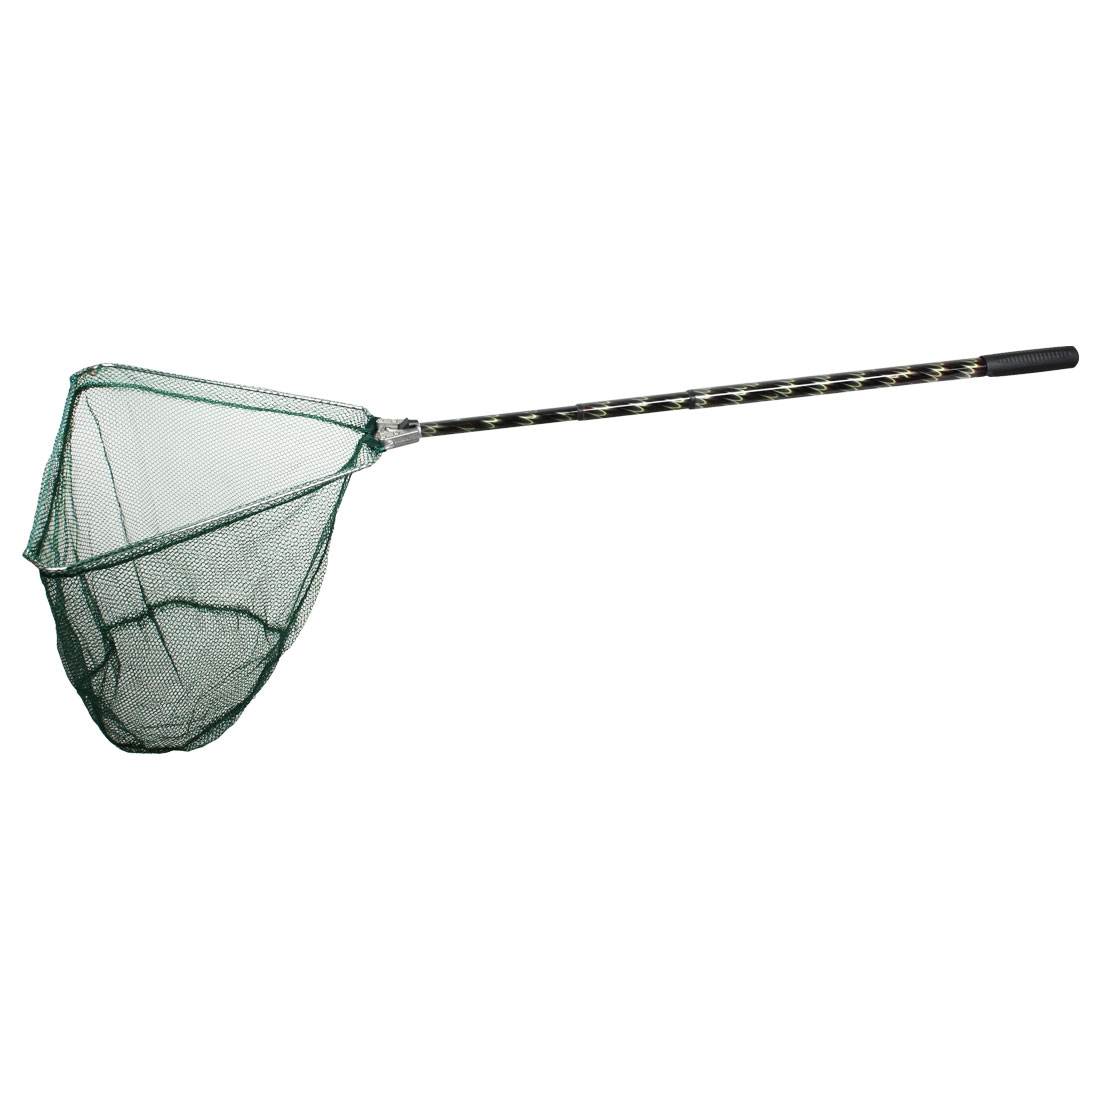 1.2M 3 Section Handle Triangle Frame Green Dipnet Fishing Landing Net